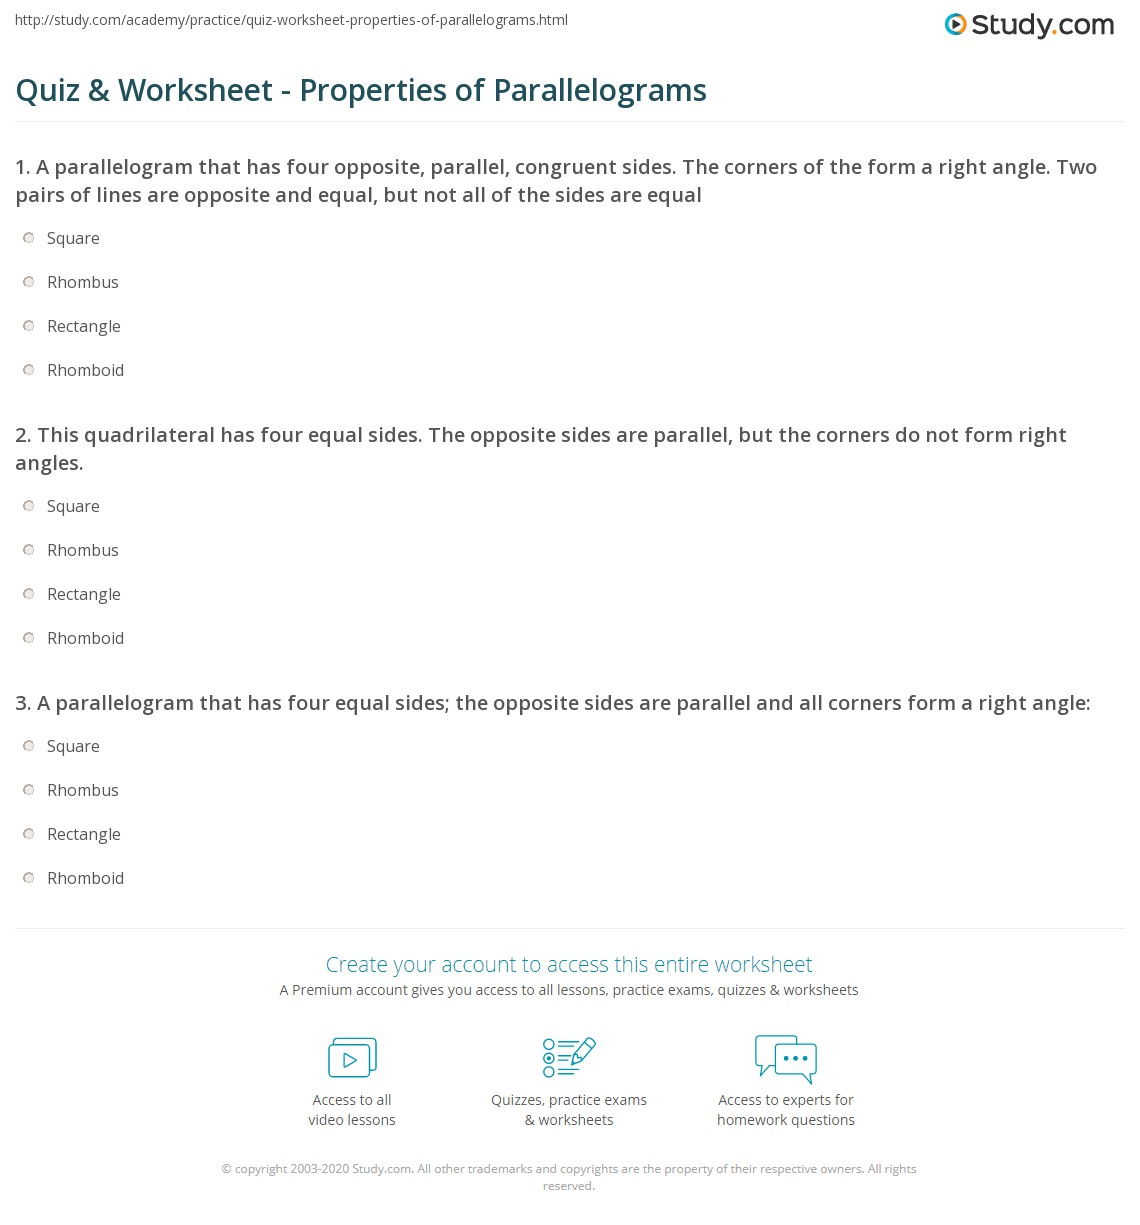 Worksheets Properties Of Parallelograms Worksheet Cheatslist Free Worksheets For Kids Amp Printable